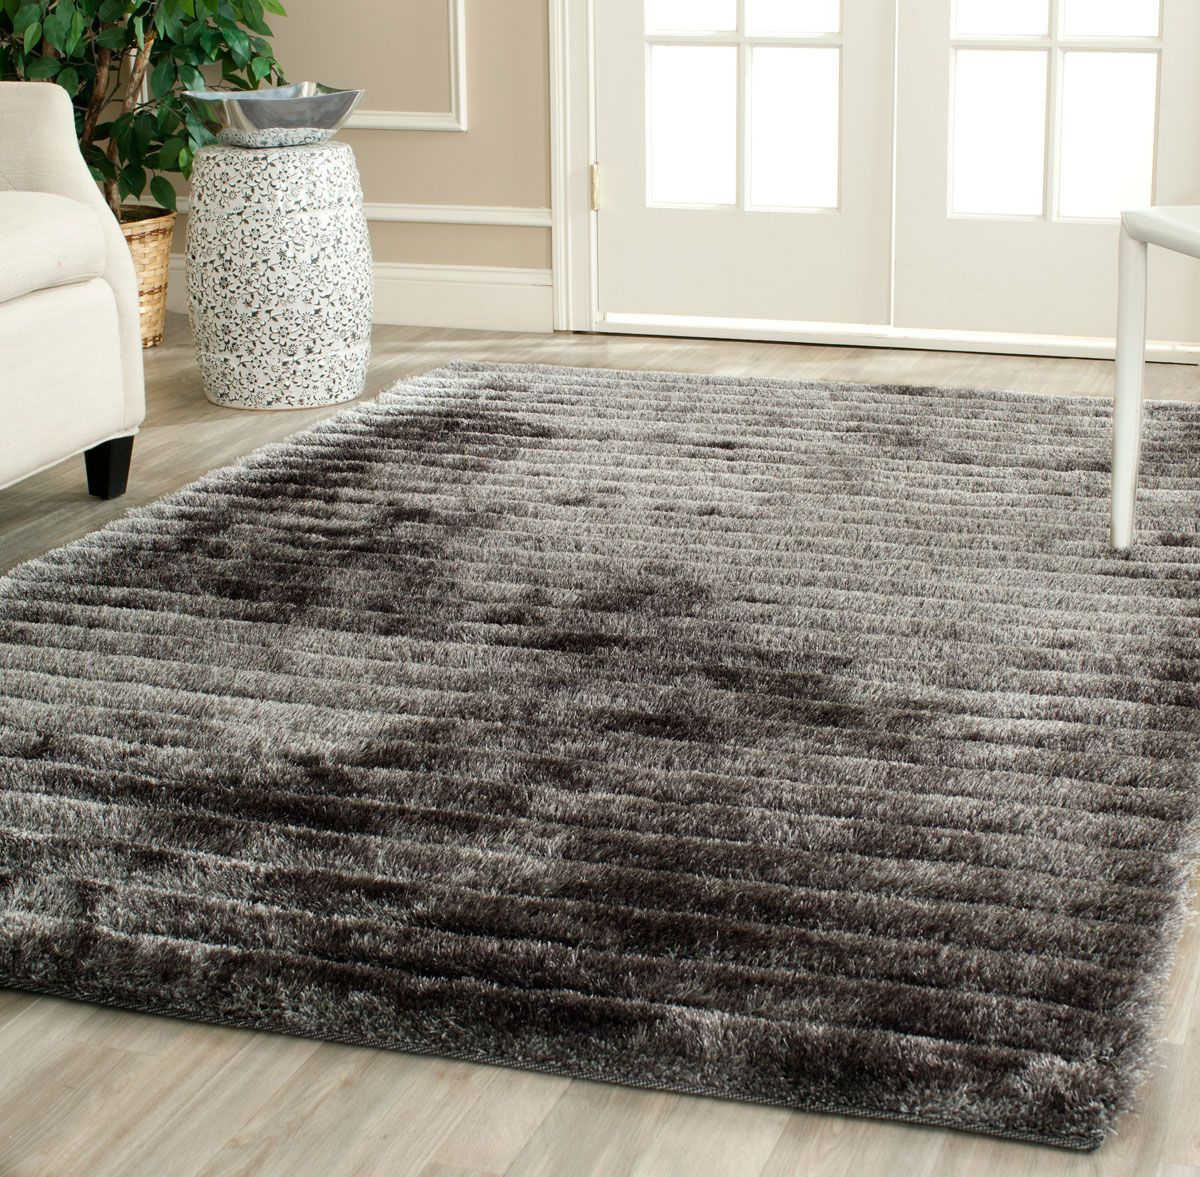 silver d shag  shag rugs and bedrooms - sgc rug from d shag collection sgc by safavieh is a silver d shag w